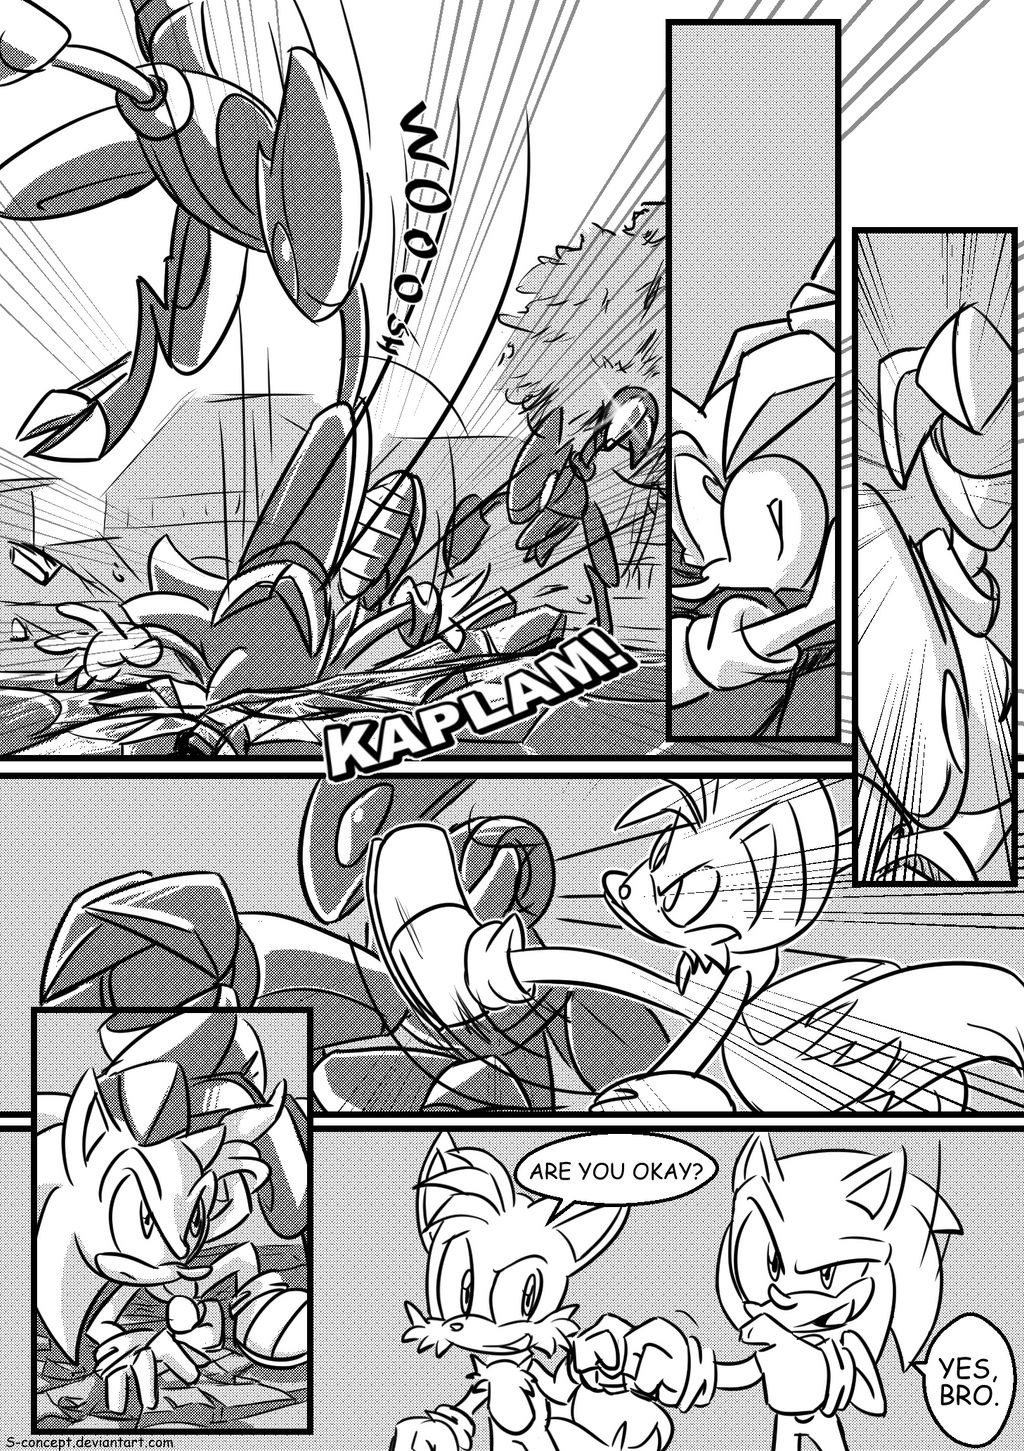 27 - The Secrets of Mobius (Page 27, Season 1) by S-concept